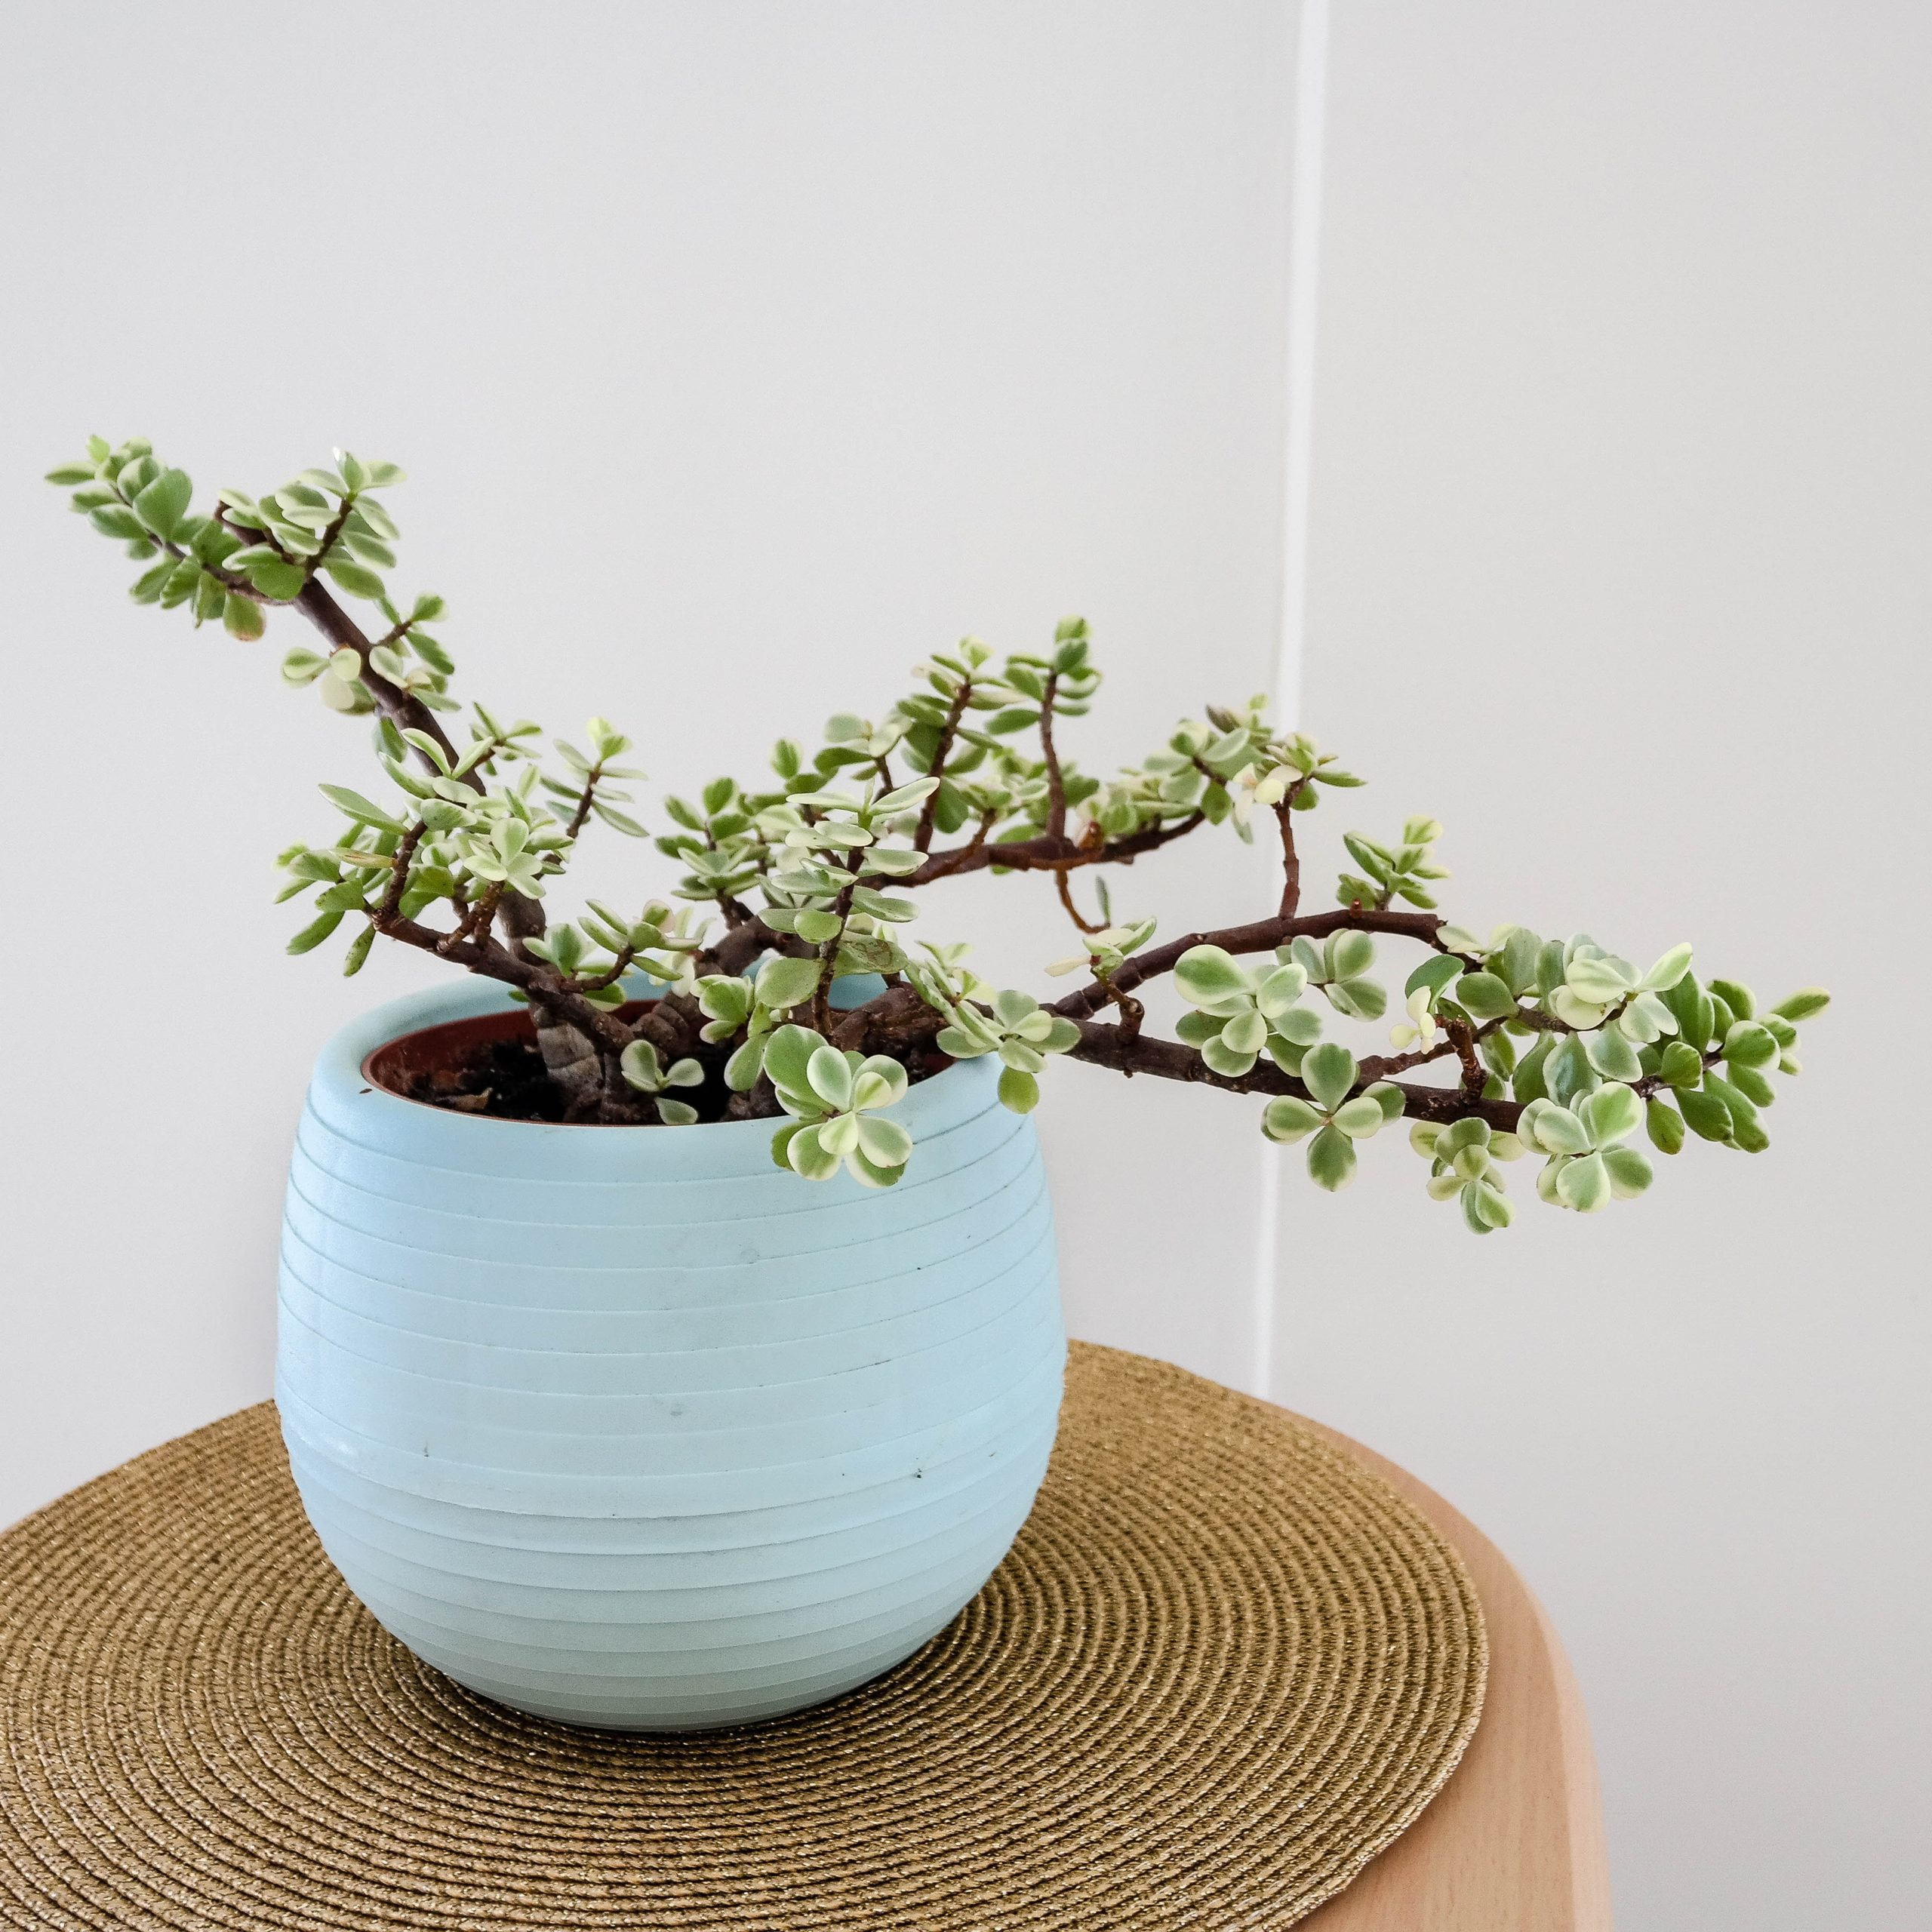 white and green leafy bonsai tree in teal ceramic pot on table